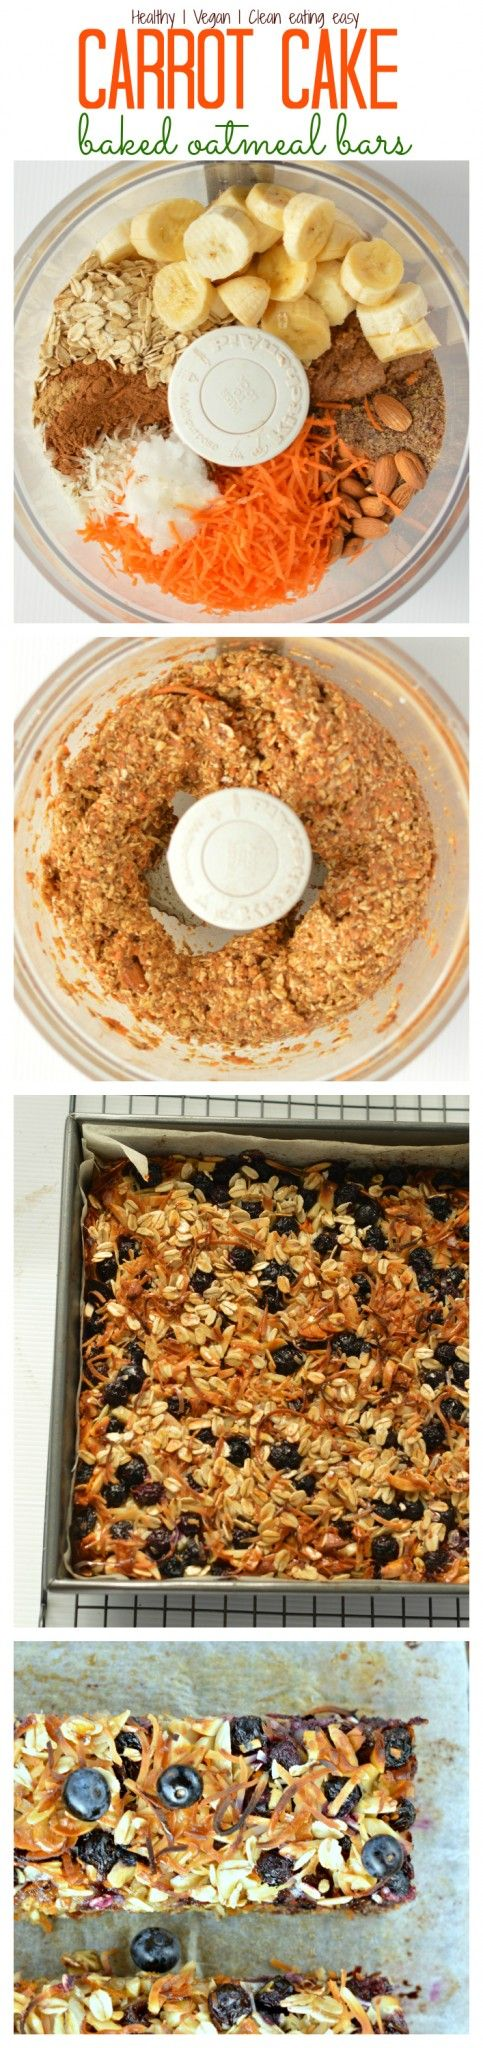 Healthy On-The-Go Breakfast | Make-ahead in 30 min, one-bowl recipe| Carrot Cake…